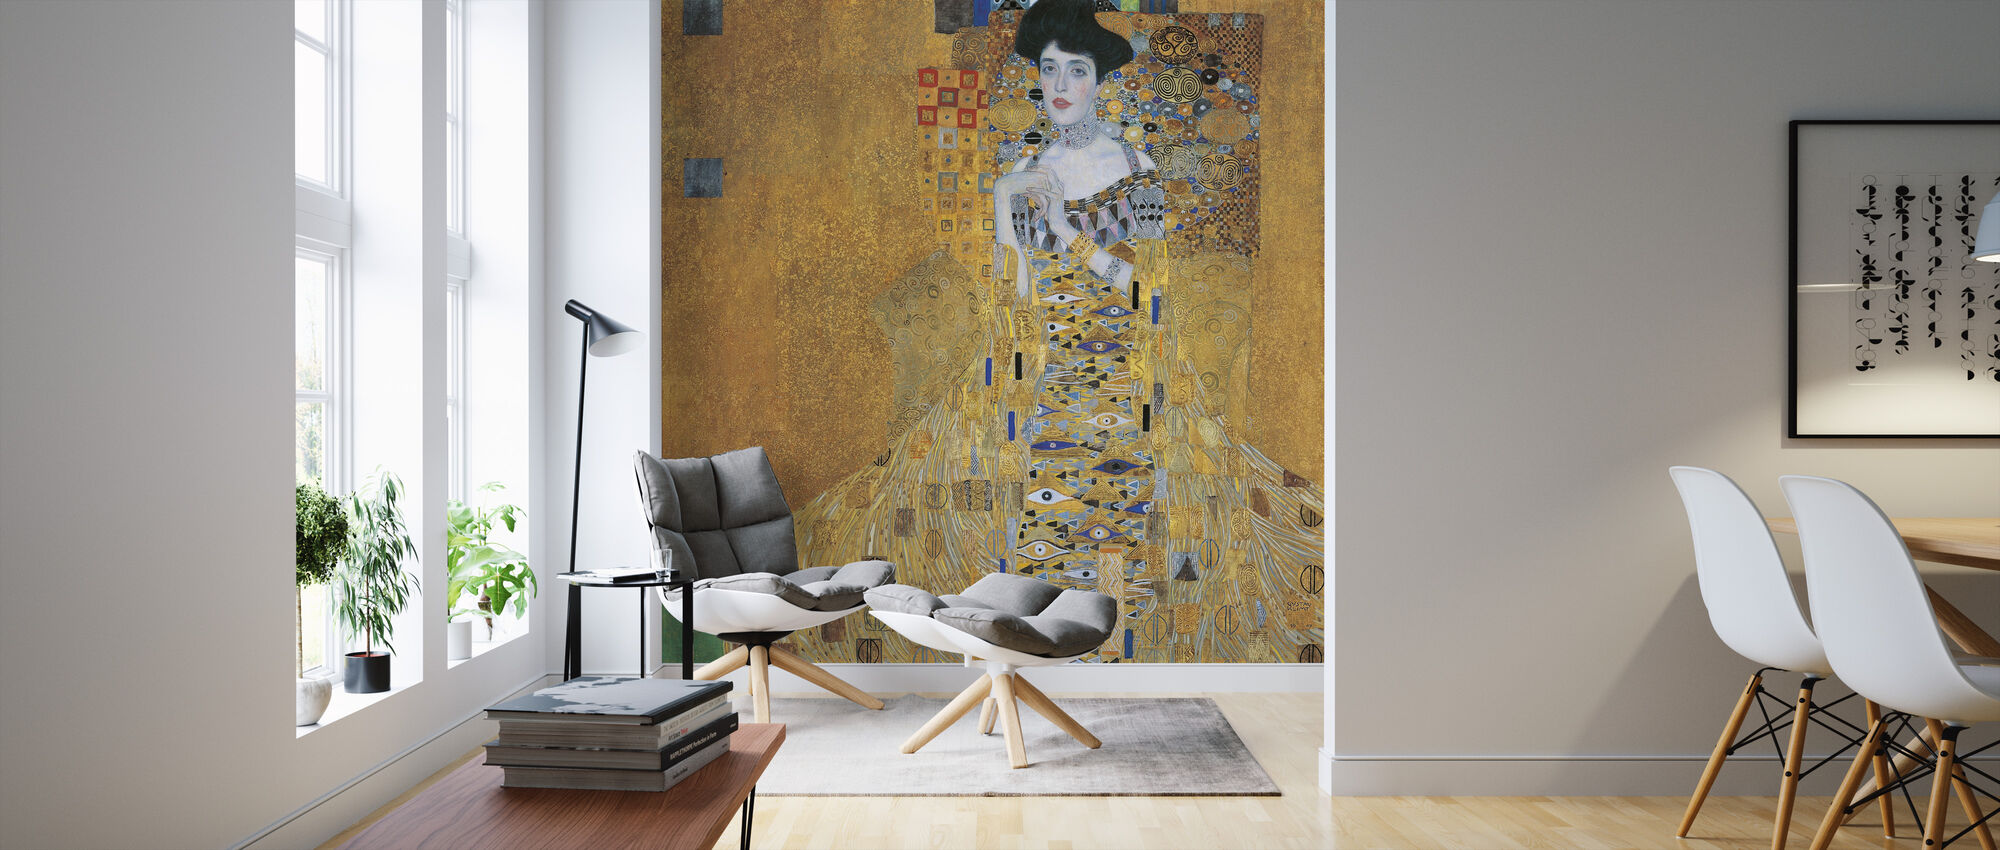 Klimt, Gustav - Adele Bloch-Bauer I - Wallpaper - Living Room